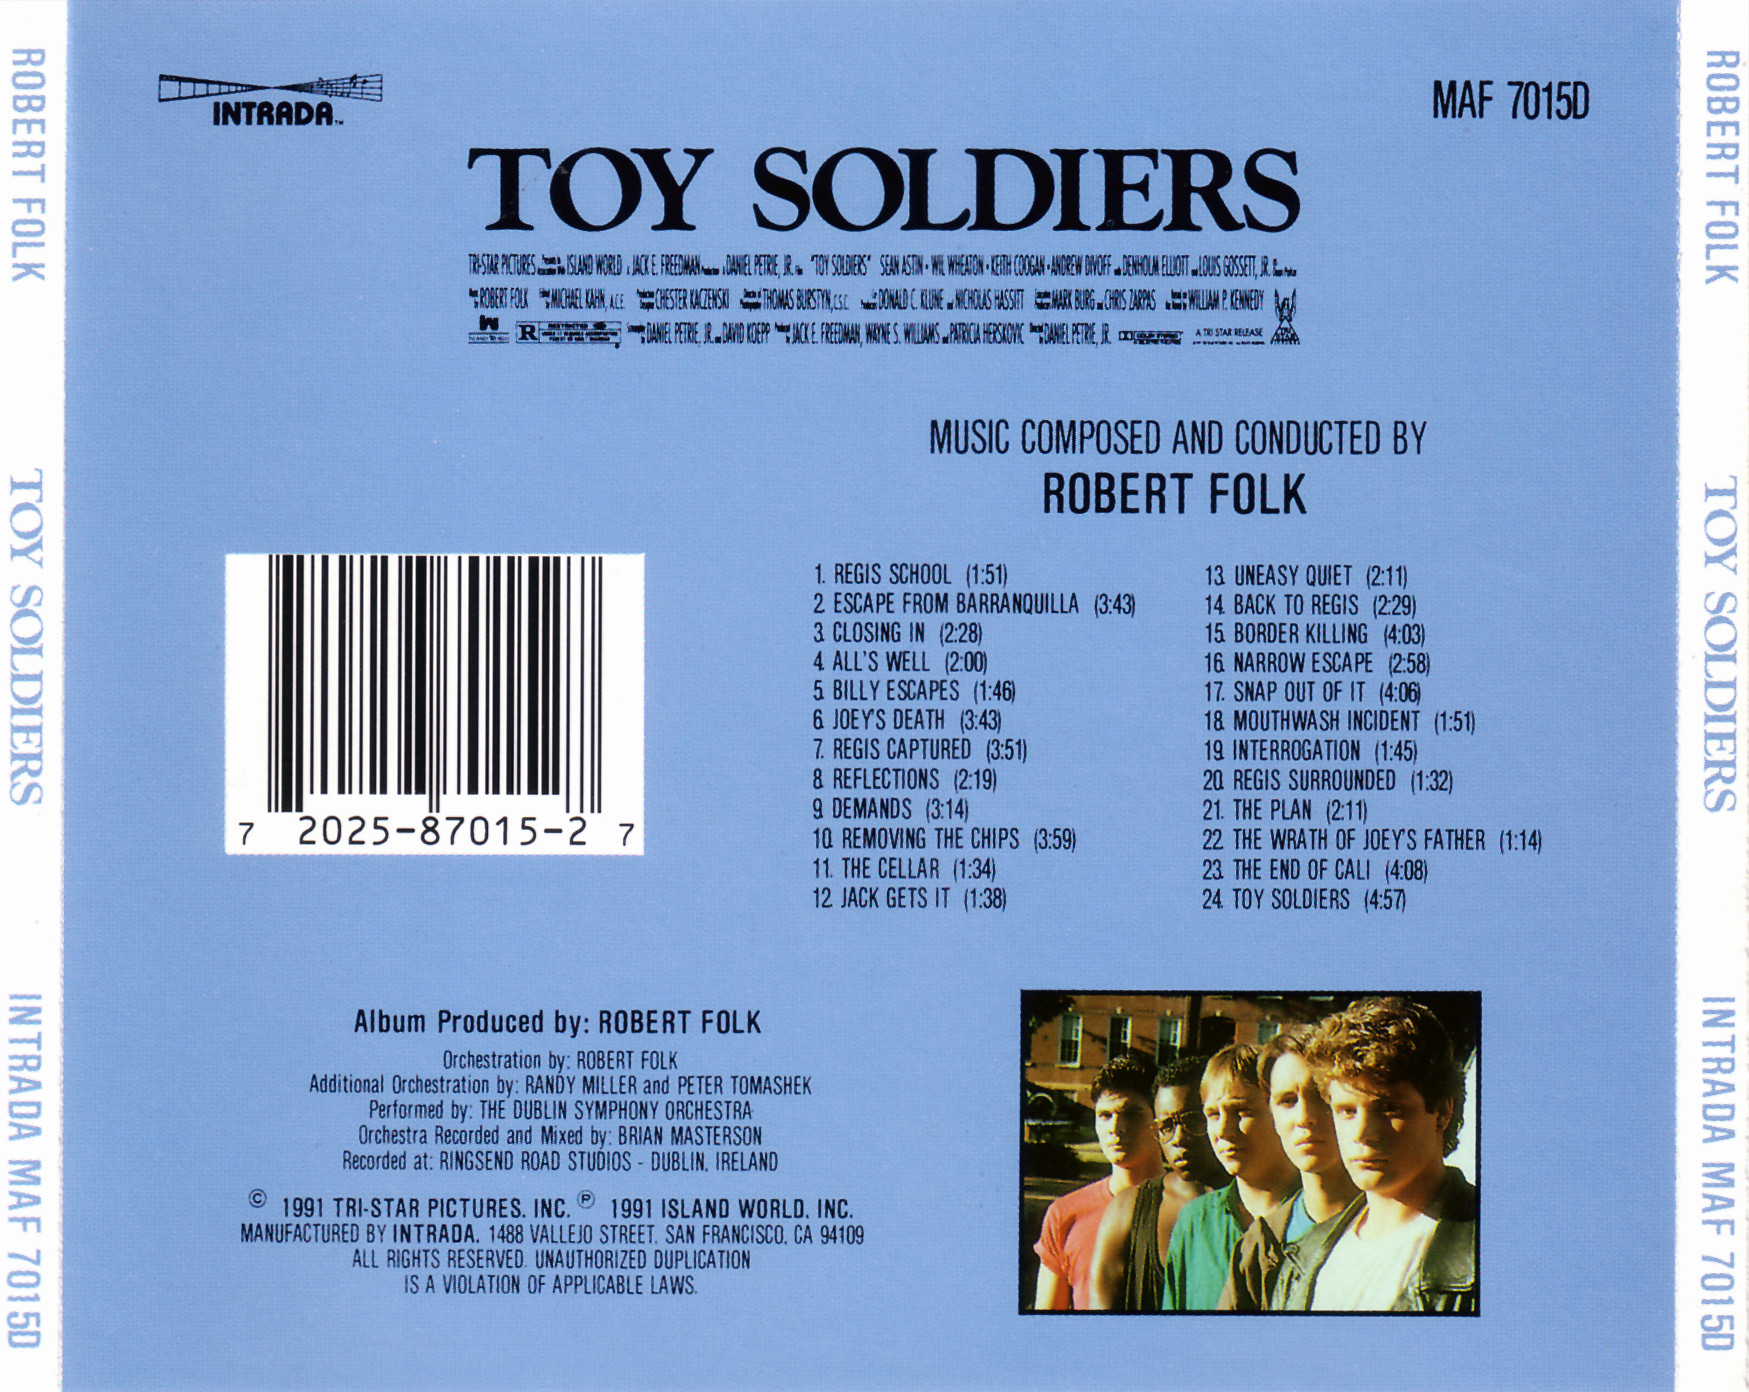 Toy soldiers soundtrack